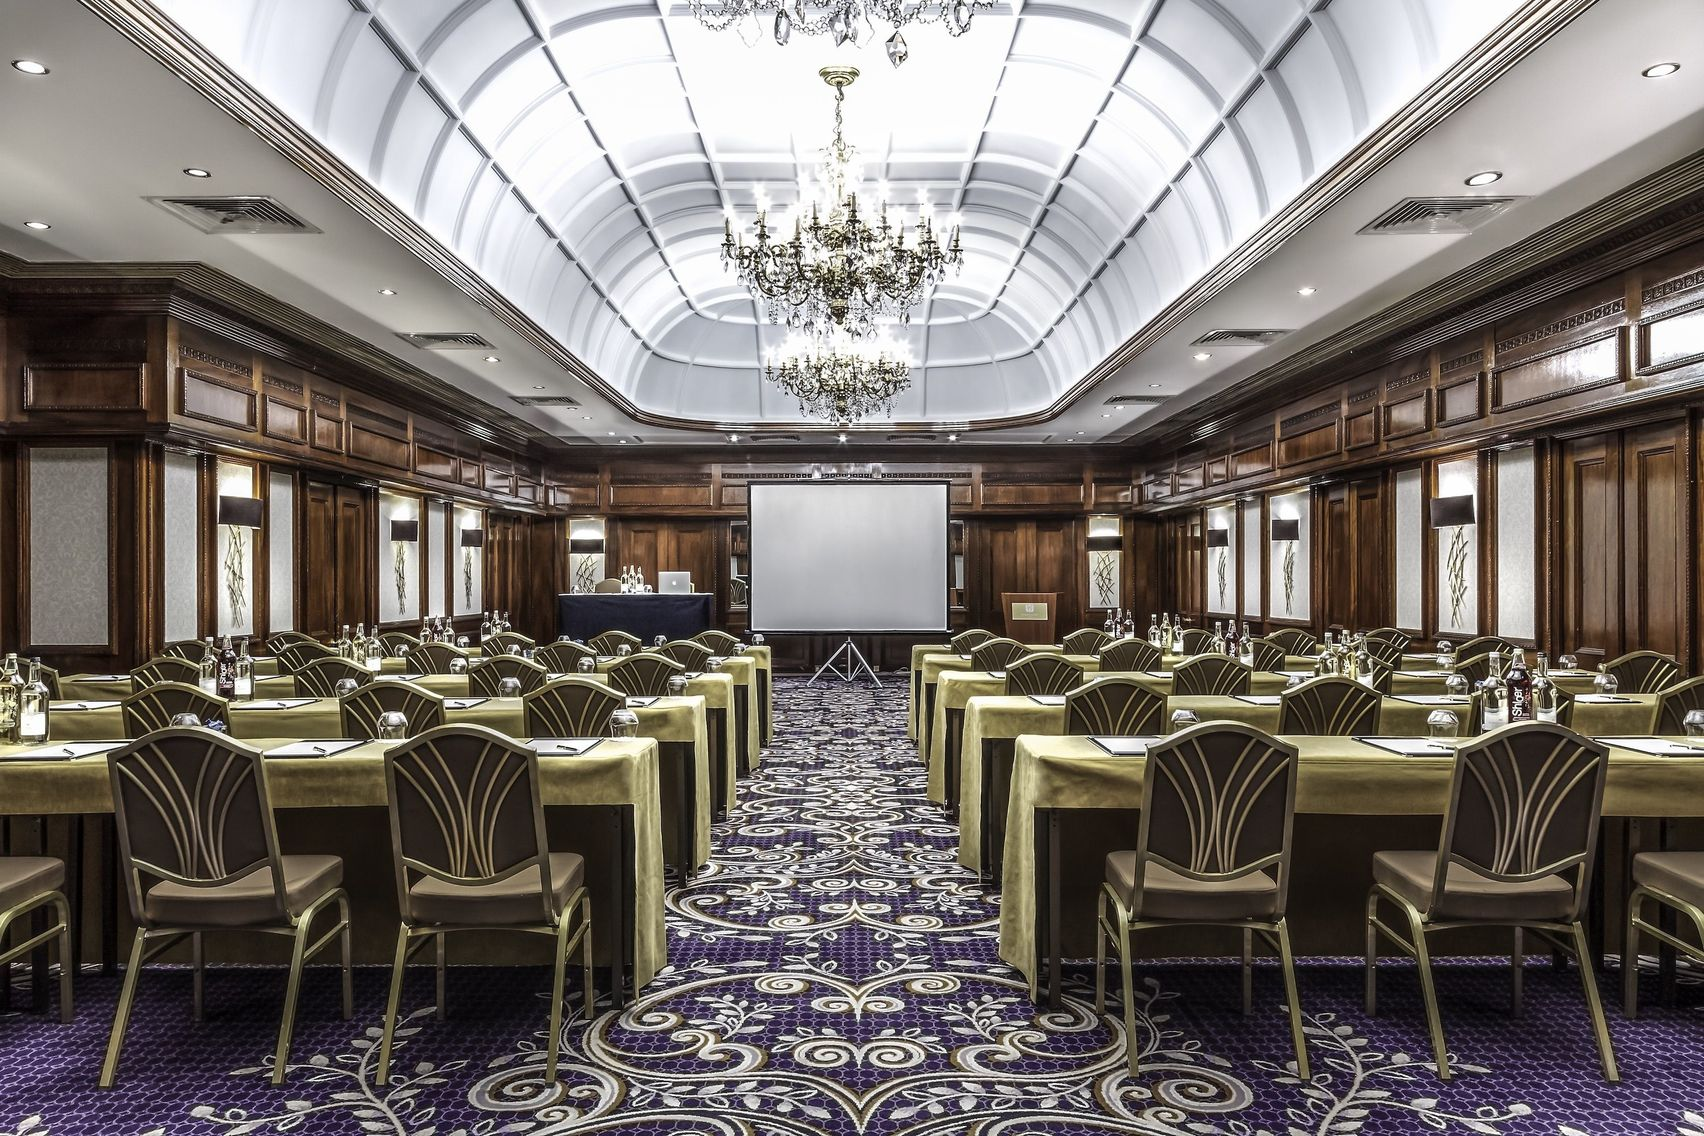 An Edwardian conference room with a skylight